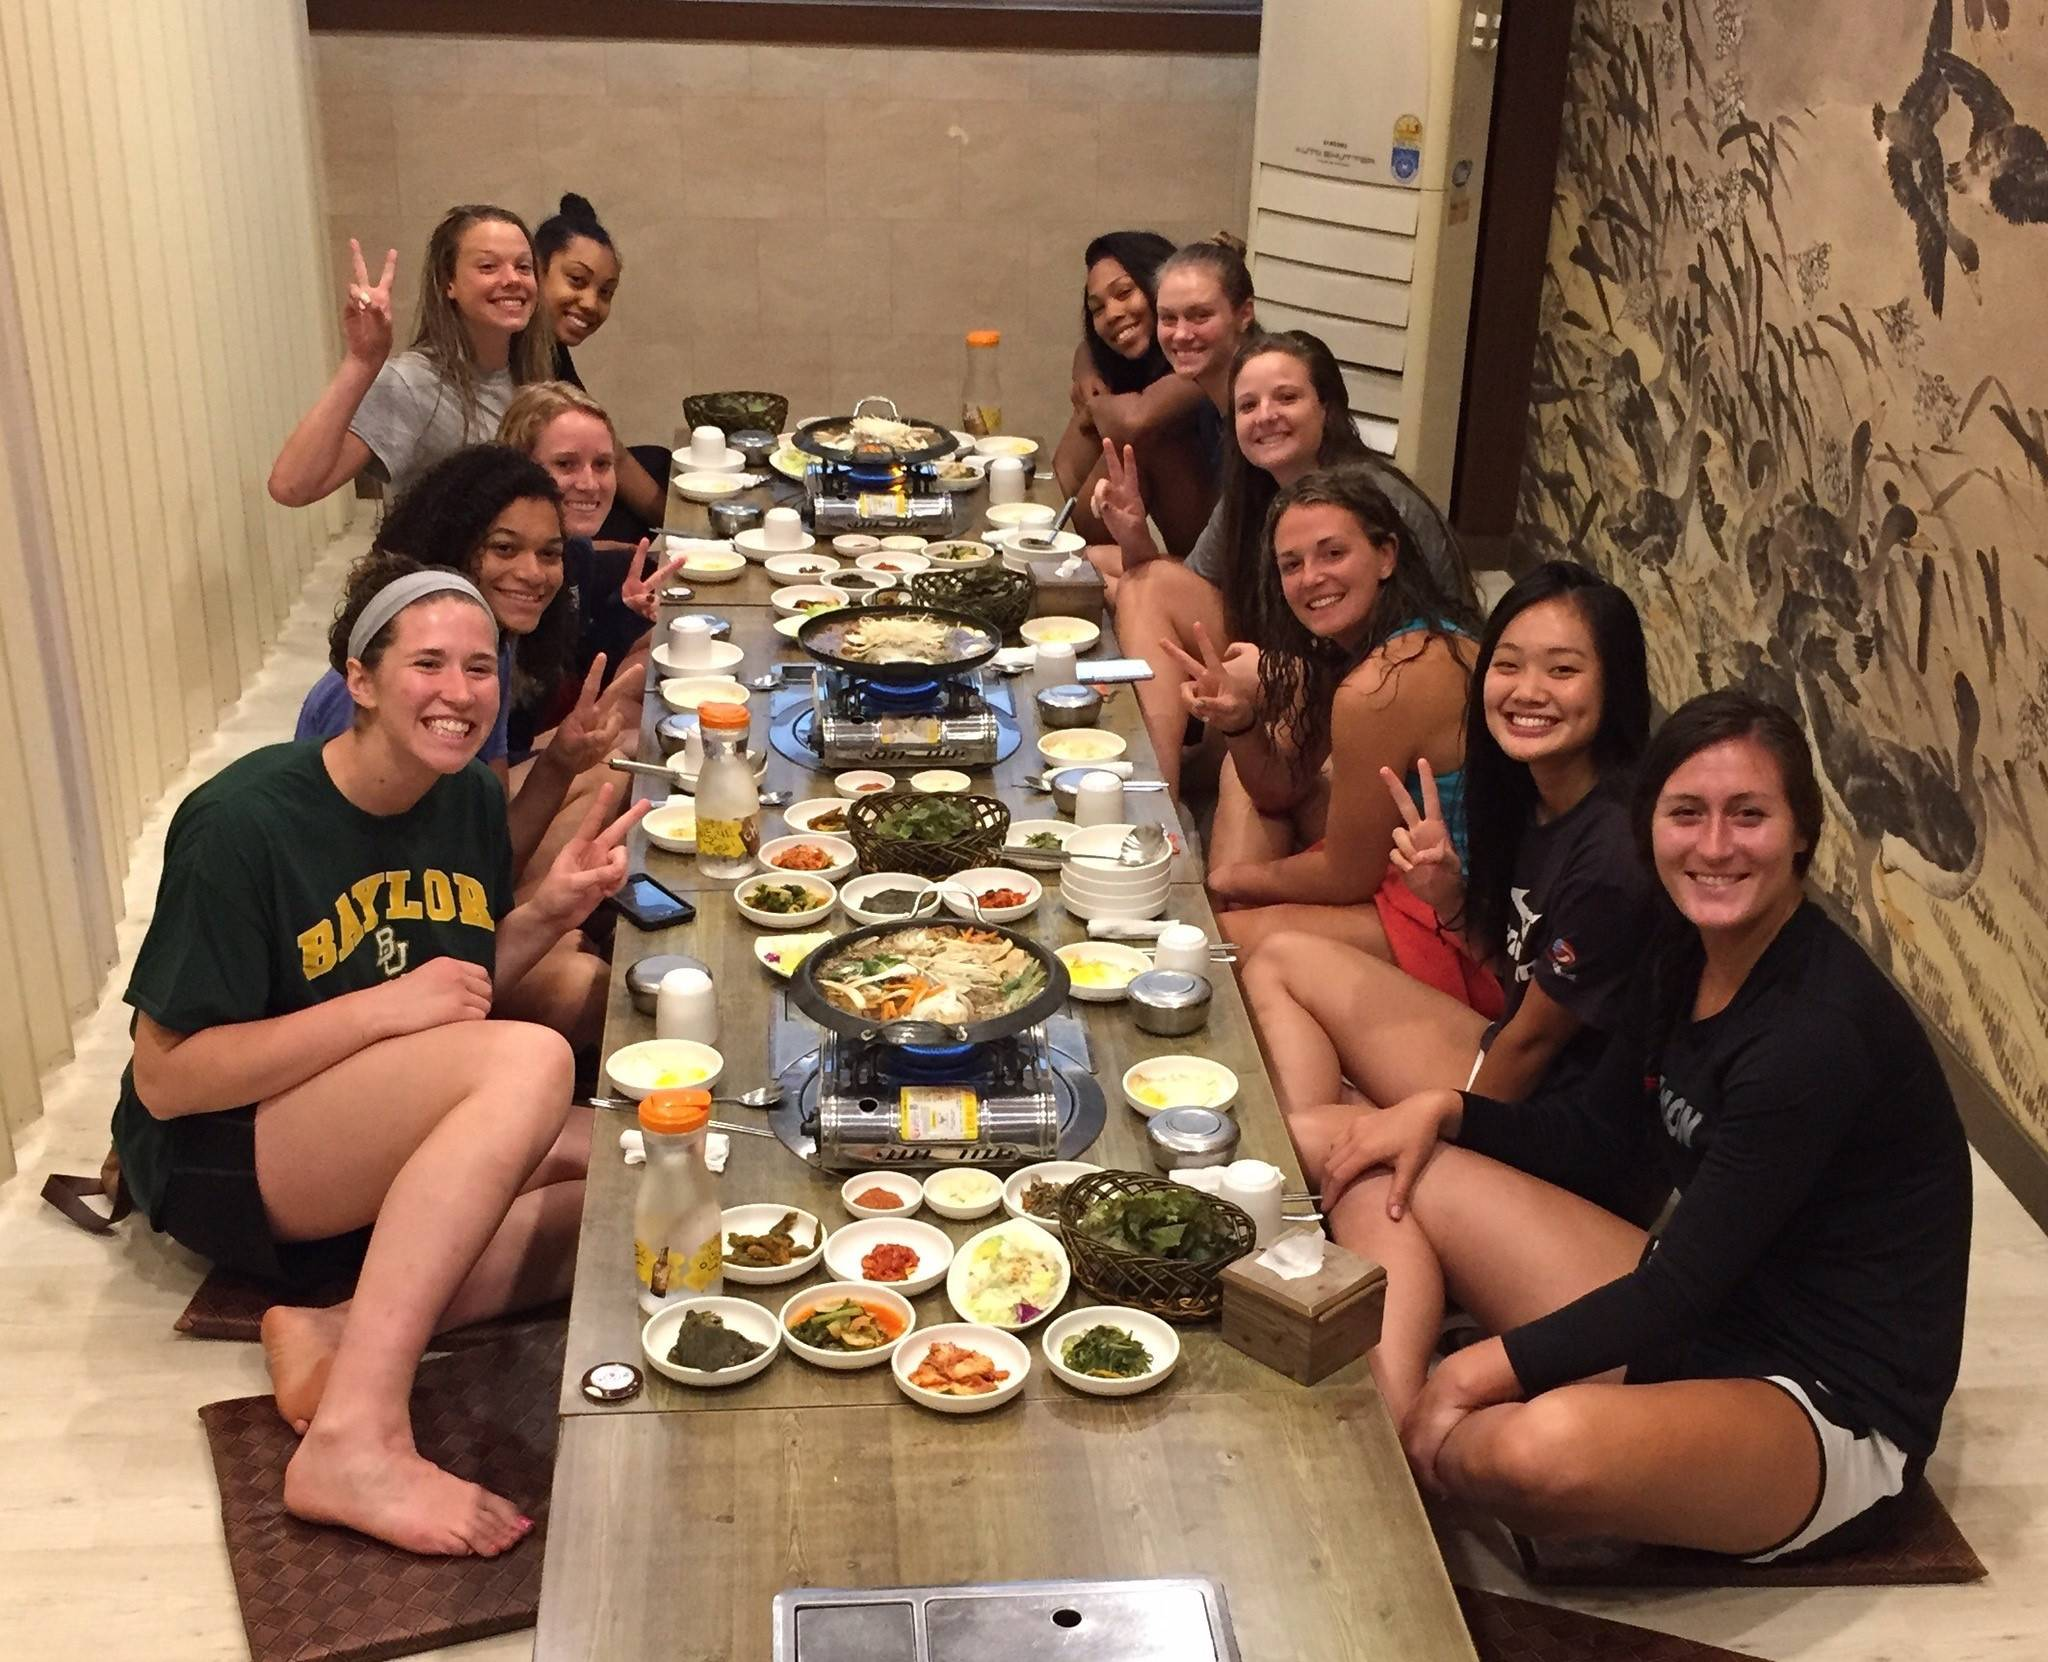 Team USA volleyball enjoys a meal.